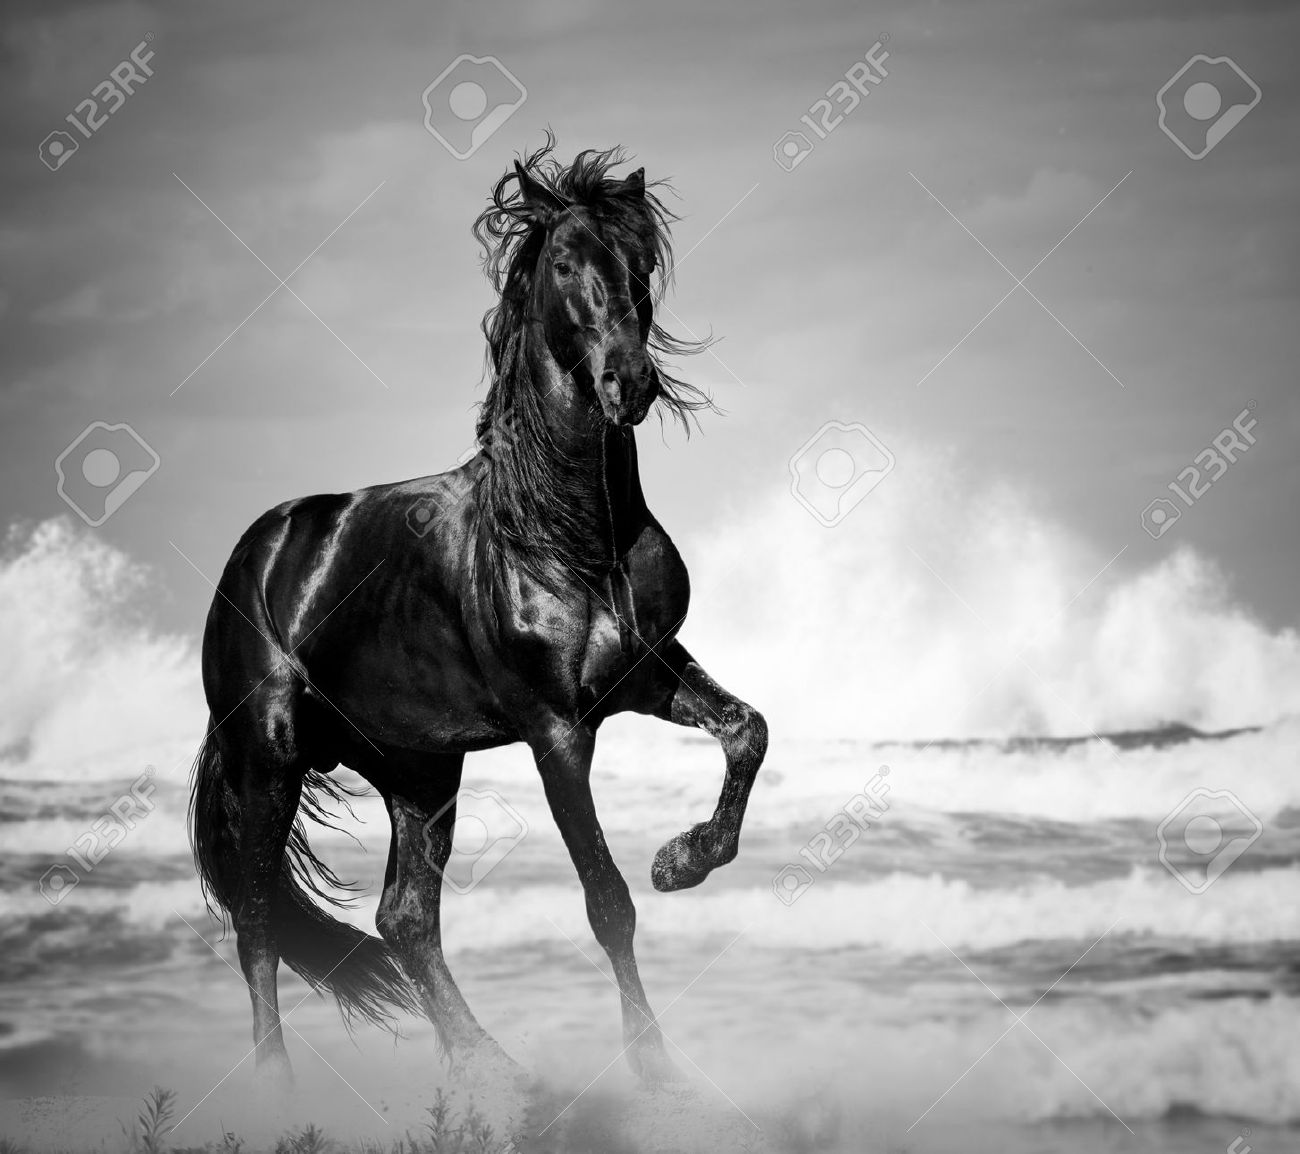 Black Stallion By The Seaside In The Wild Stock Photo Picture And Royalty Free Image Image 42890304